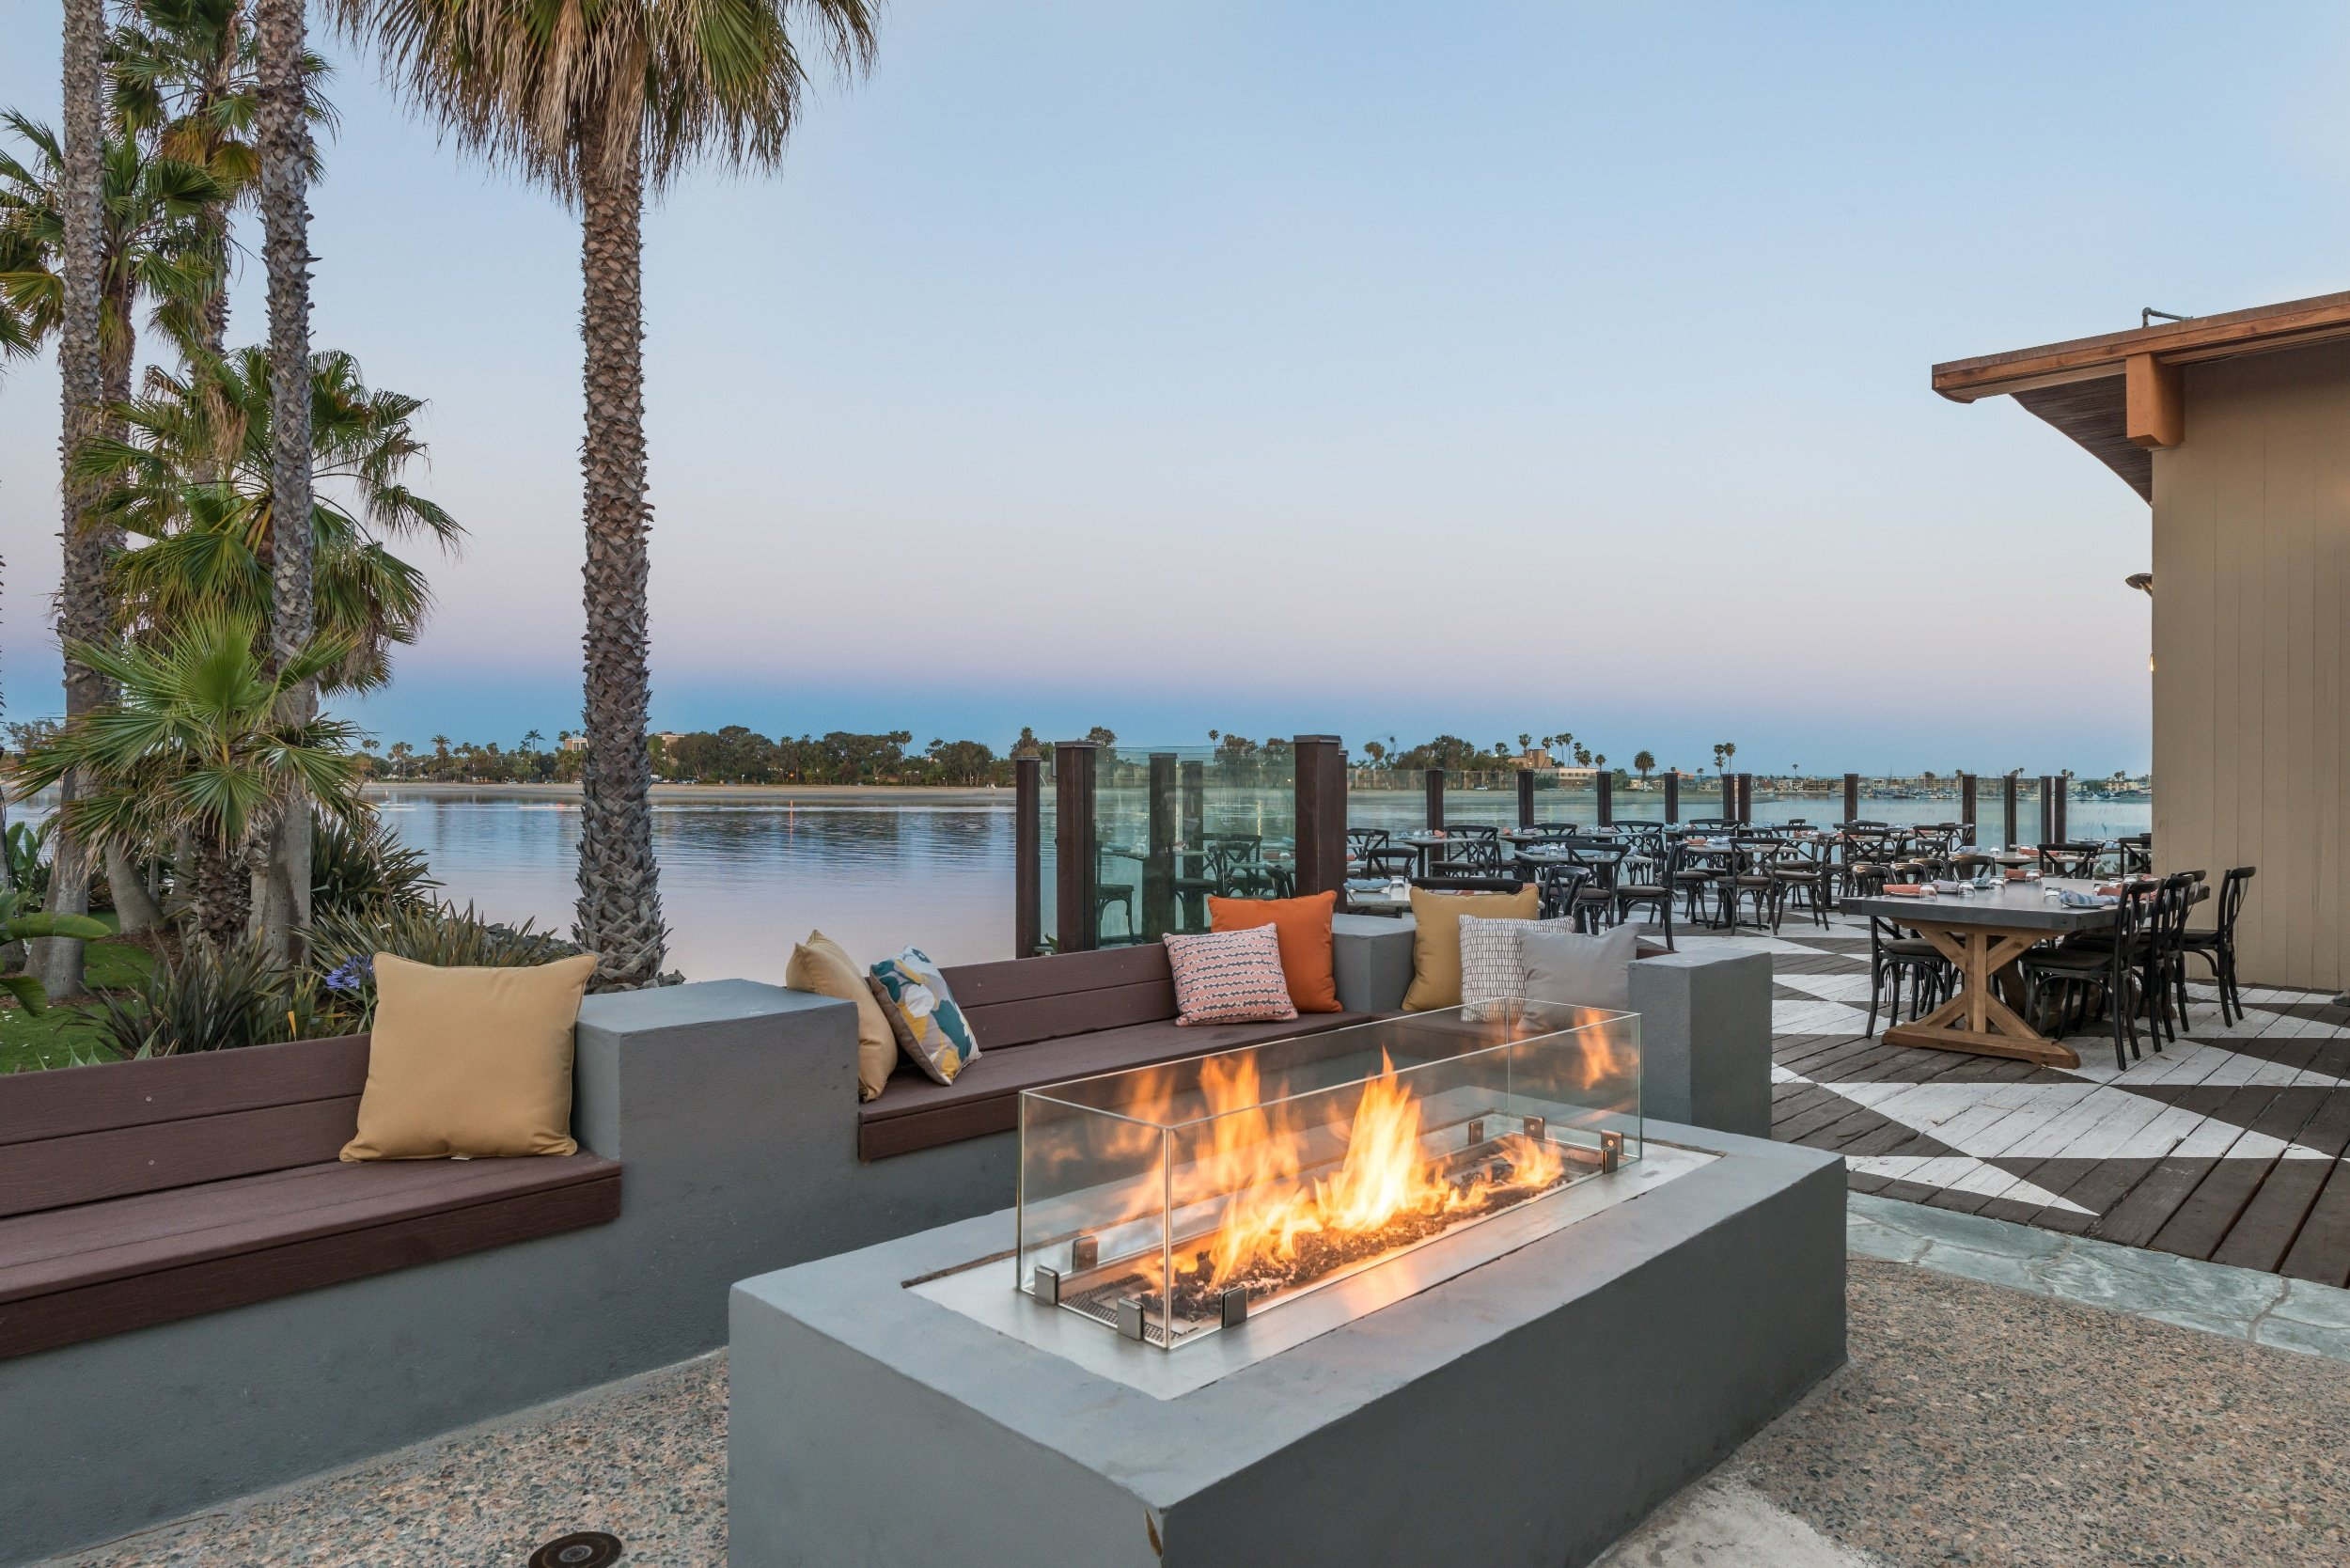 Tidal restaurant at Paradise Point resort in San Diego